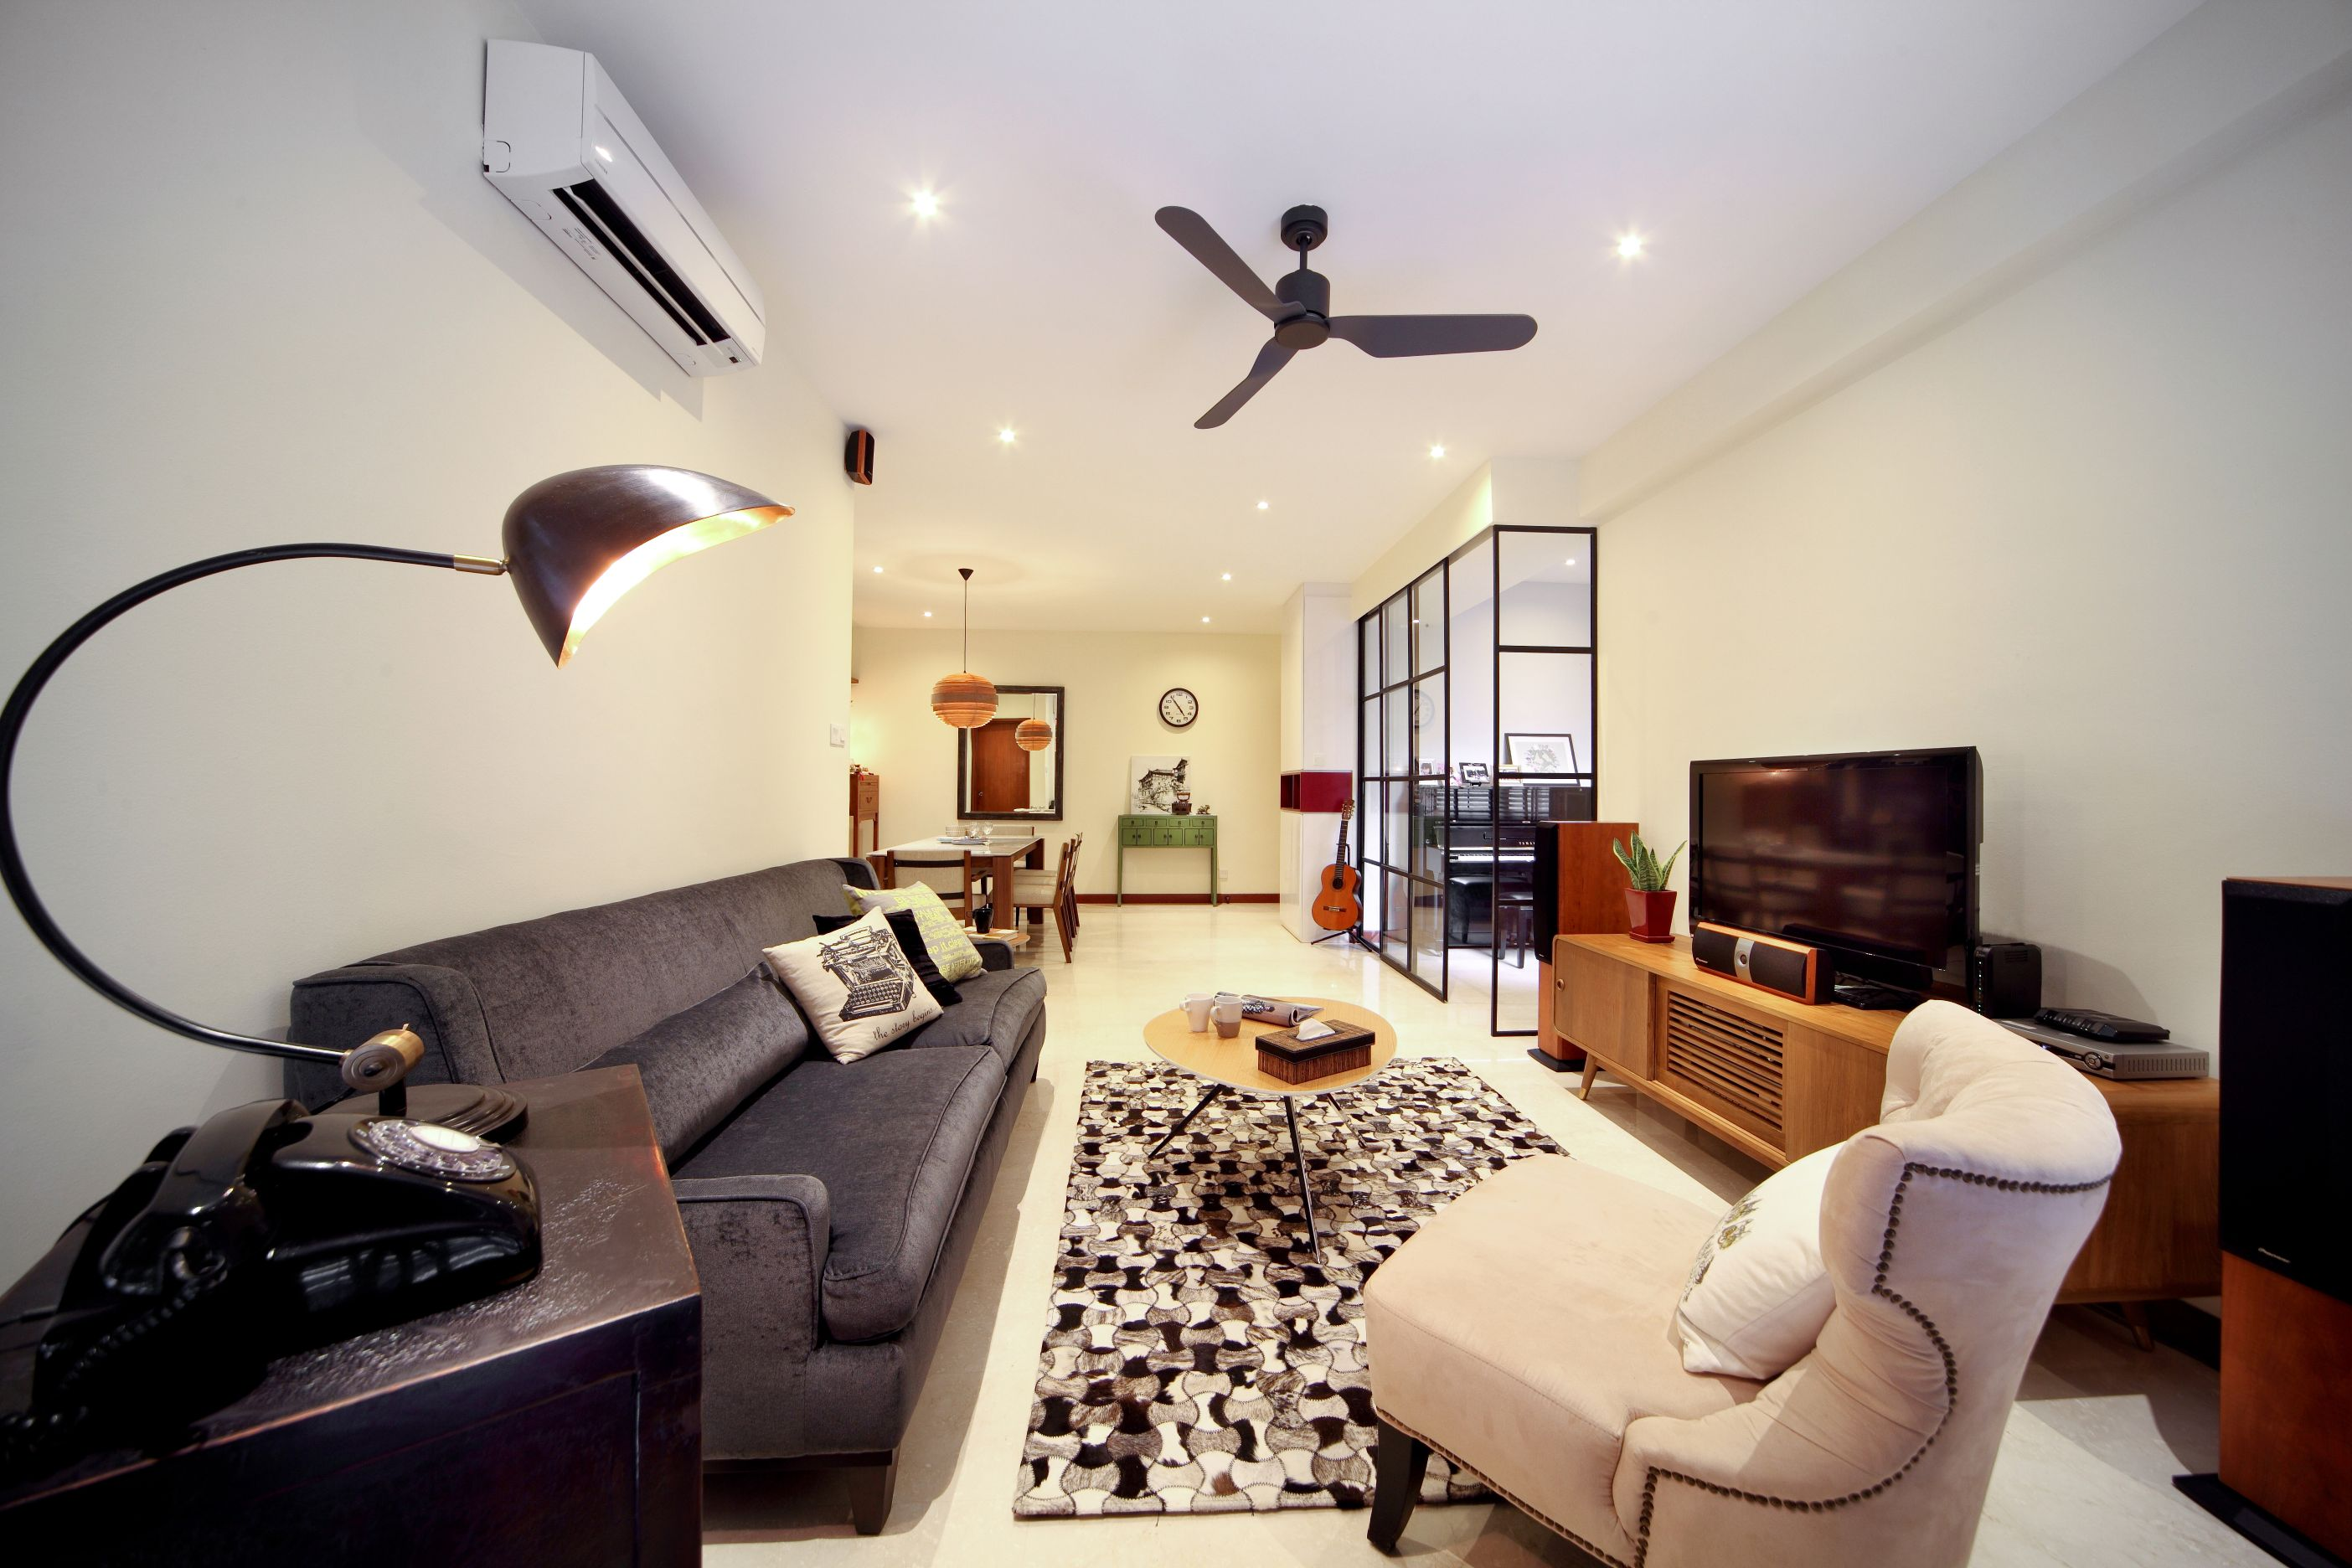 Casafina Condo ∙ Bedok South